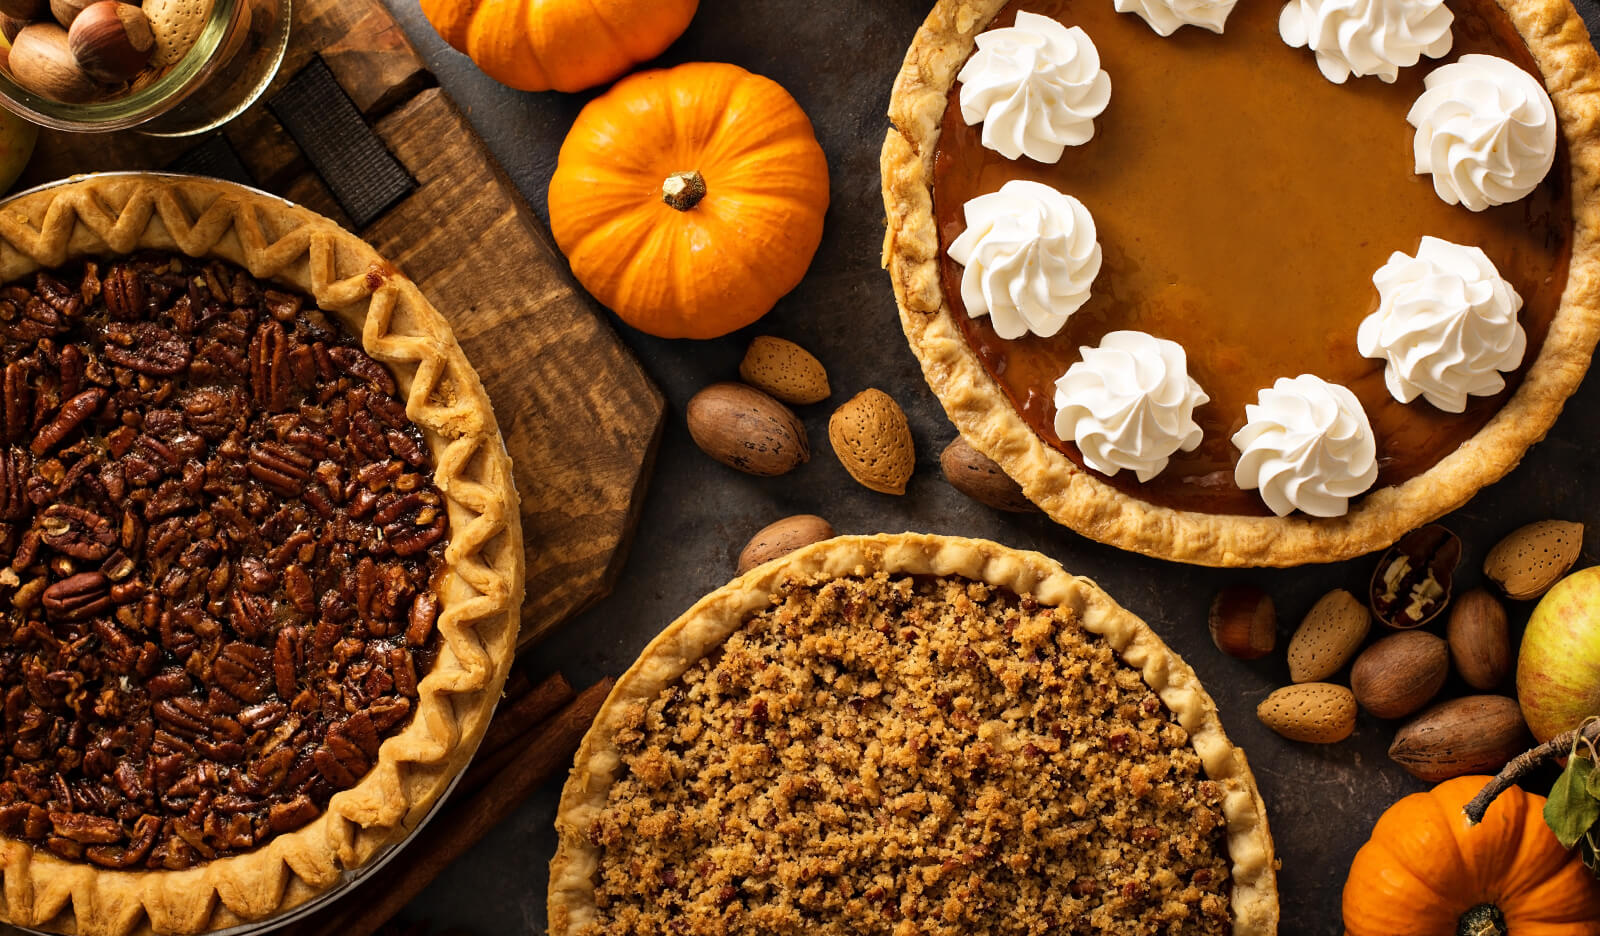 Tempting-yet-unhealthy Thanksgiving pies